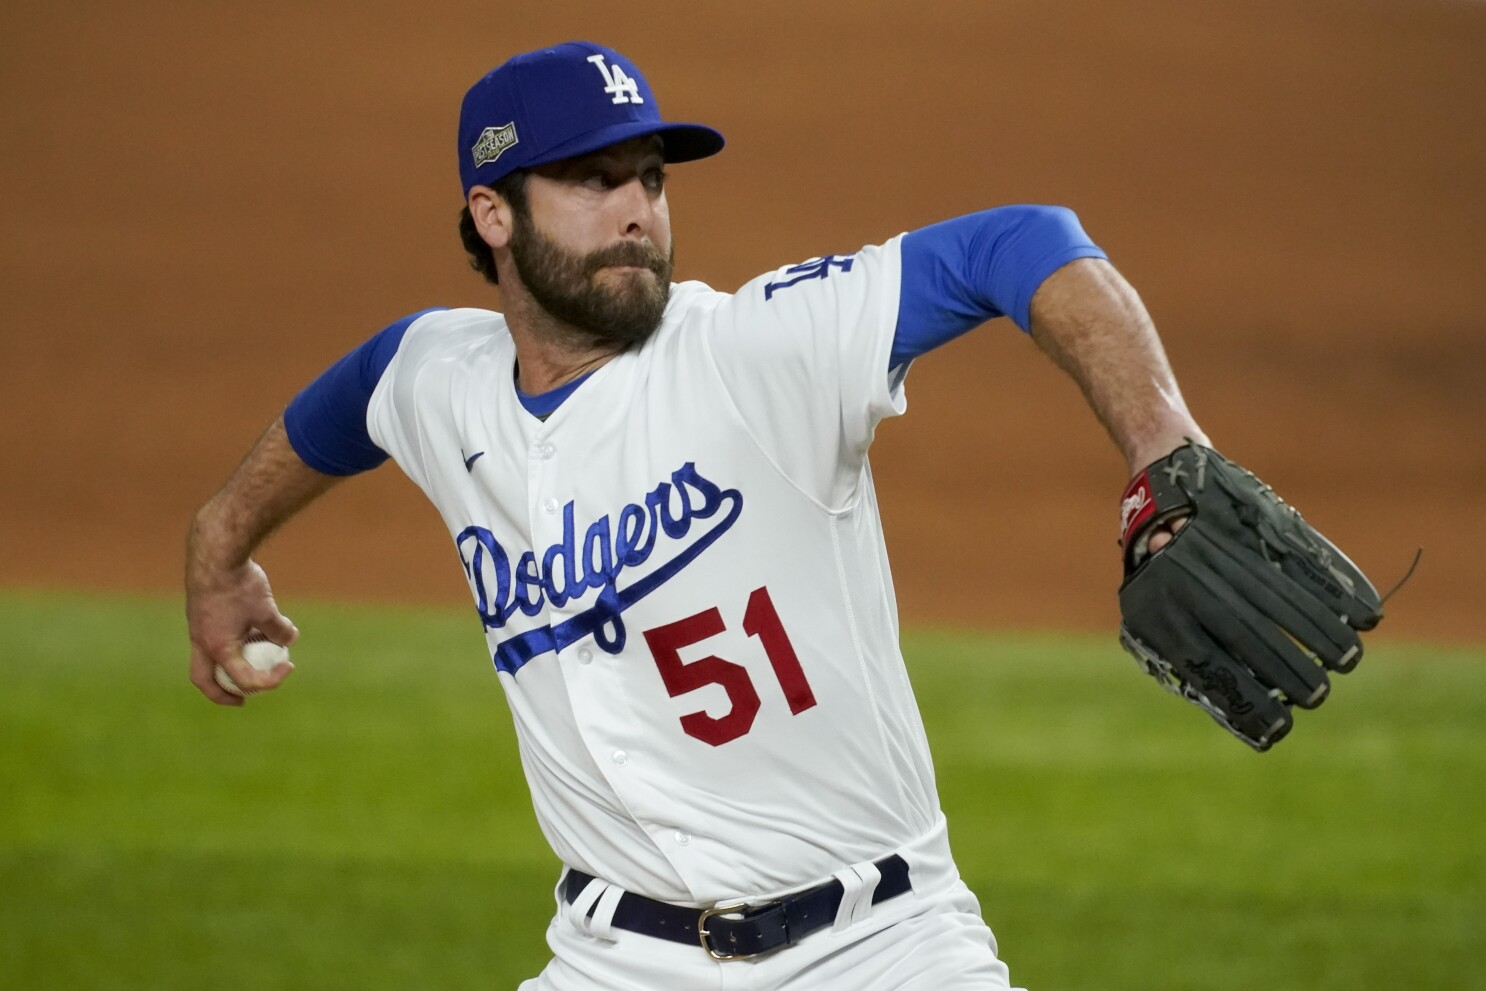 Dodgers' Dylan Floro goes from forgotten to key reliever - Los Angeles Times